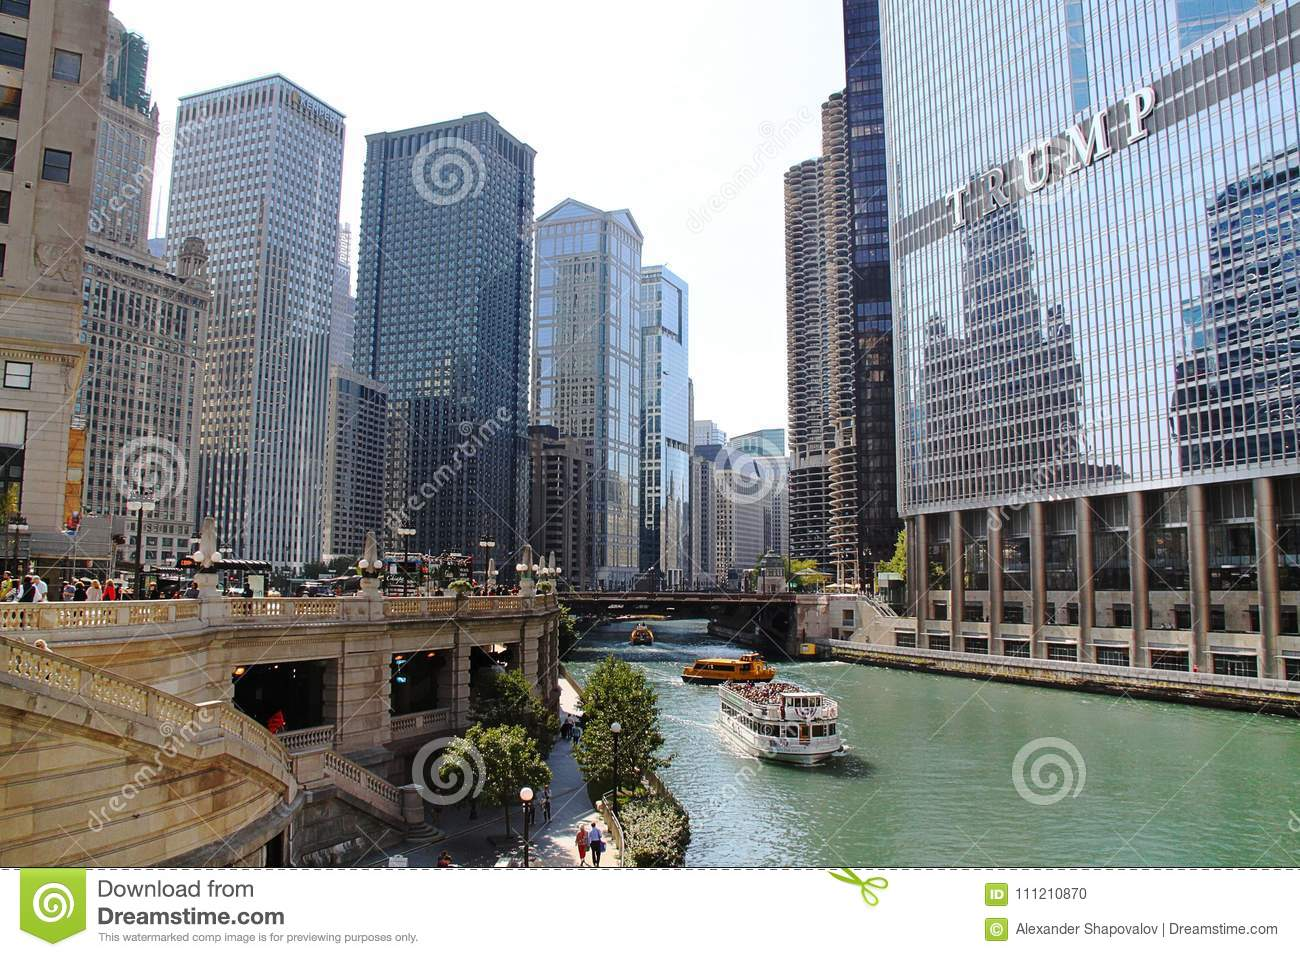 Amazing view of Chicago skyline. Towers in Chicago, IL, USA. 09.19.2014